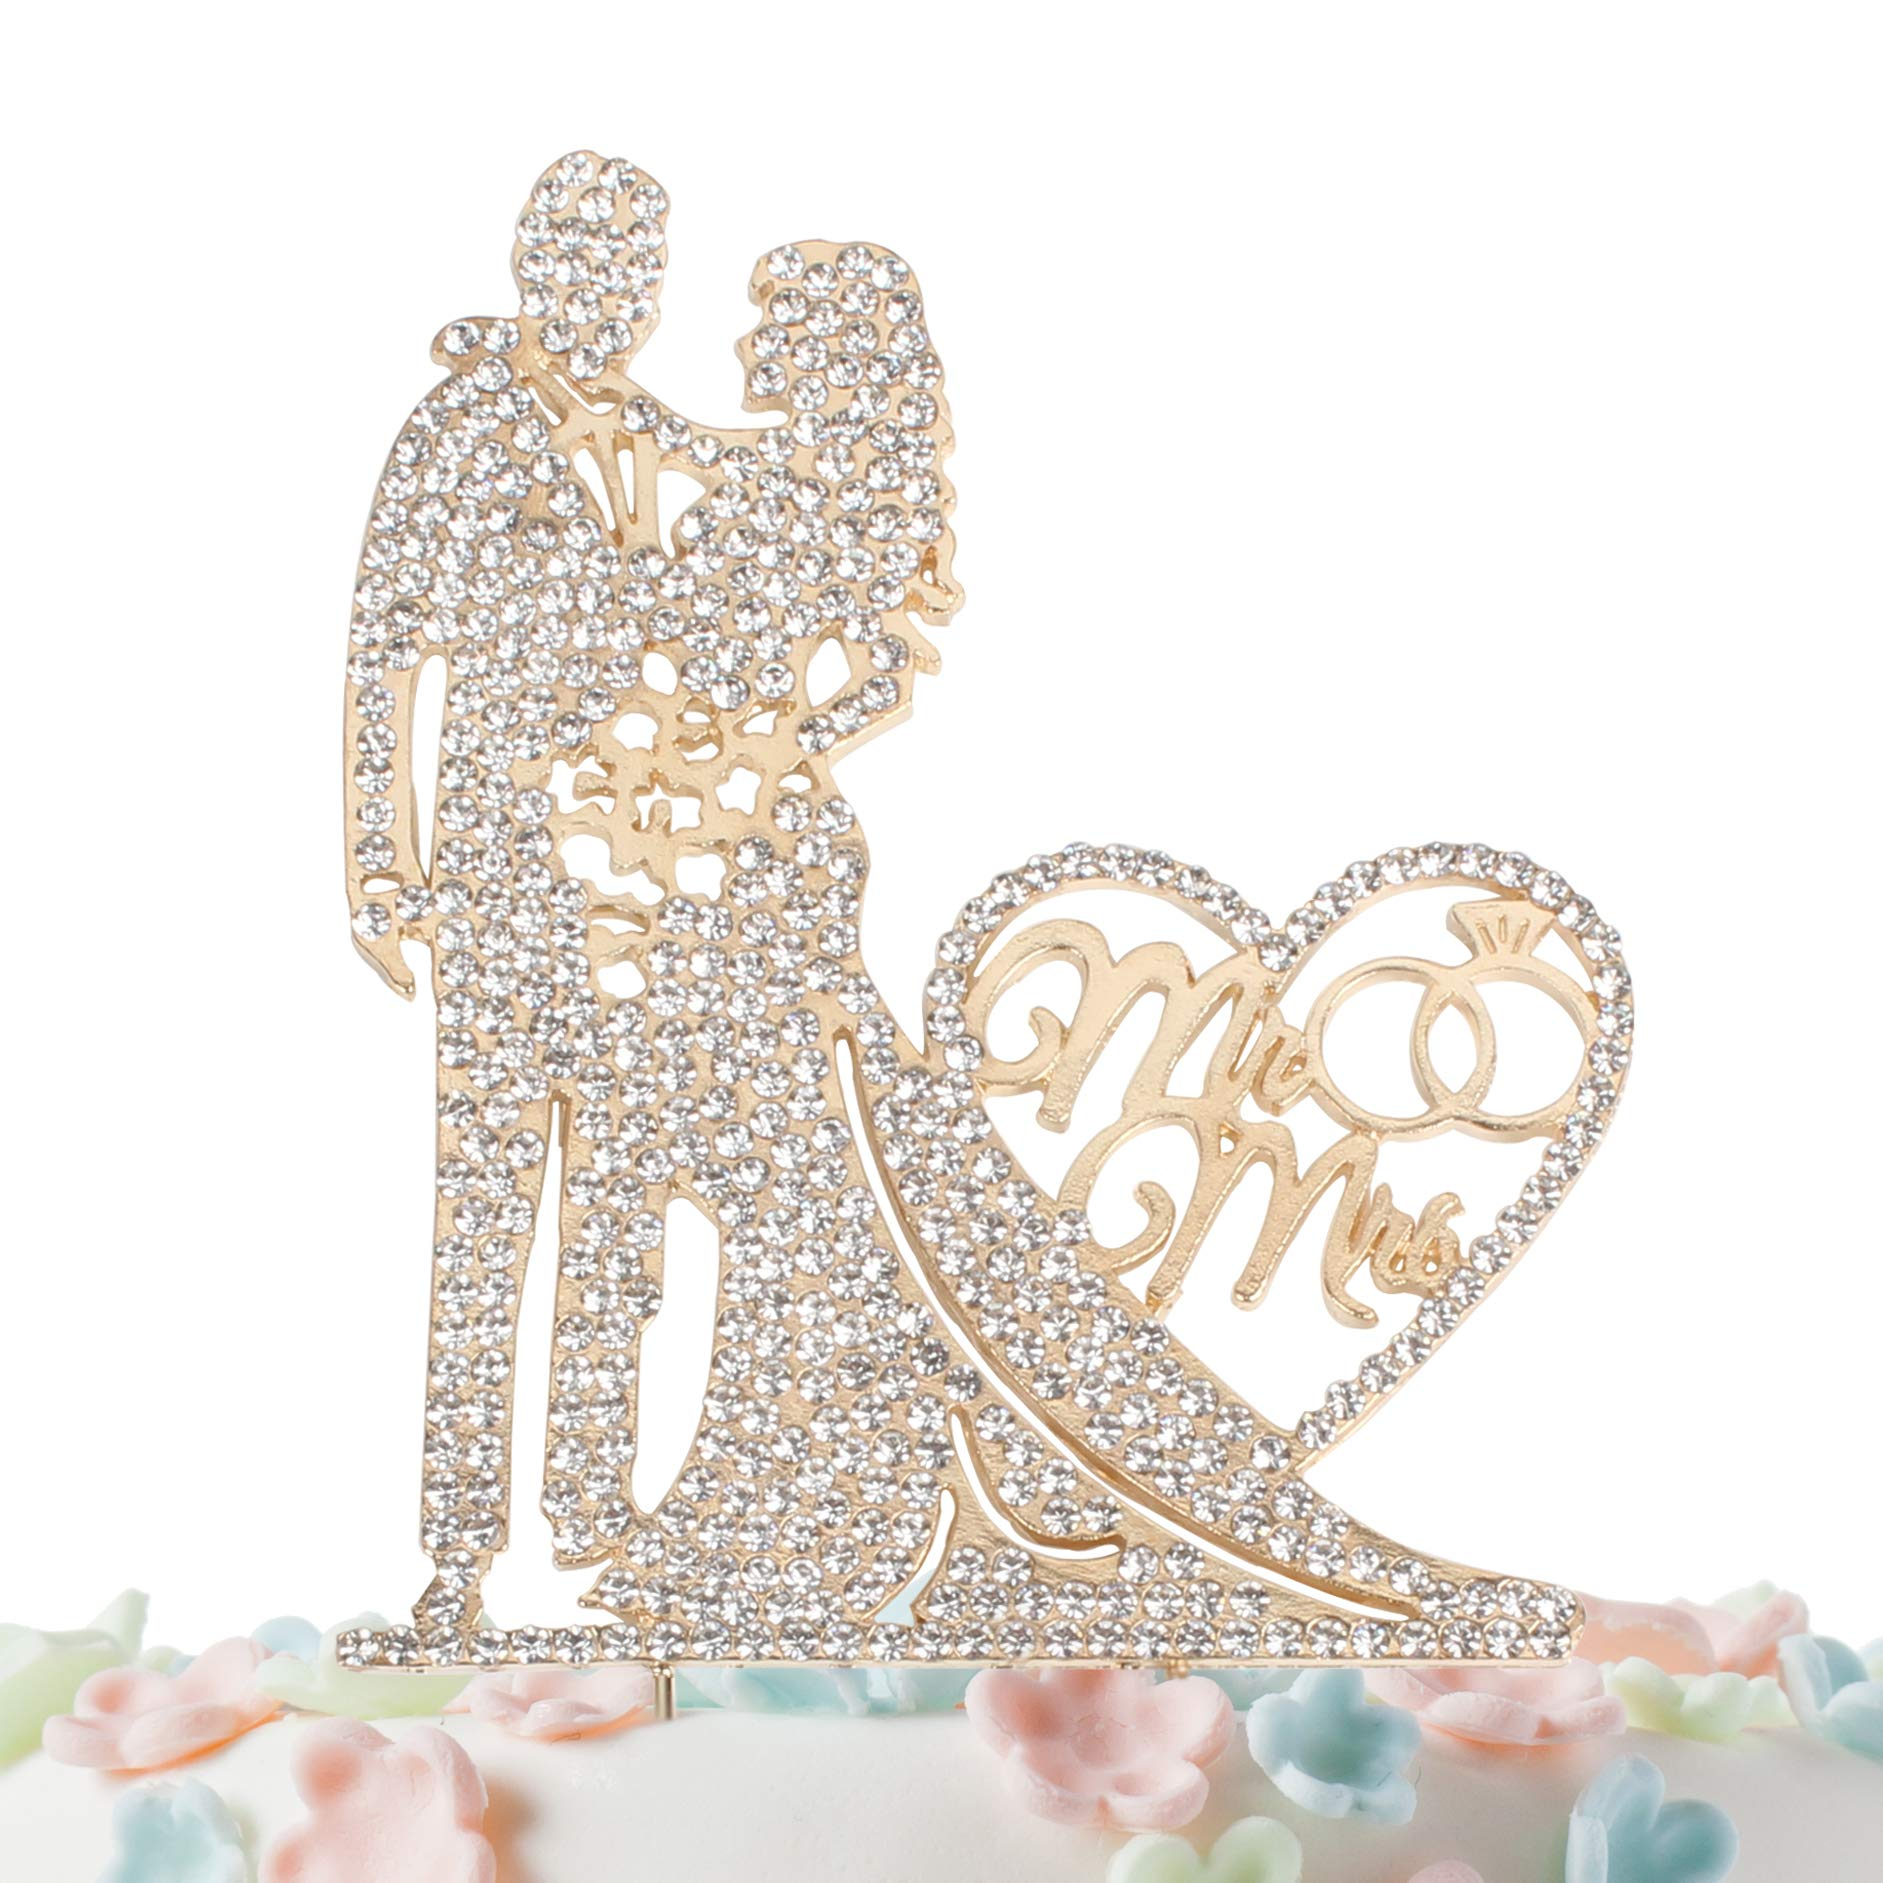 Mr and Mrs Cake Topper Rhinestone Crystal Metal Love Wedding Cake Topper Funny Bride and Groom Cake Topper Gold